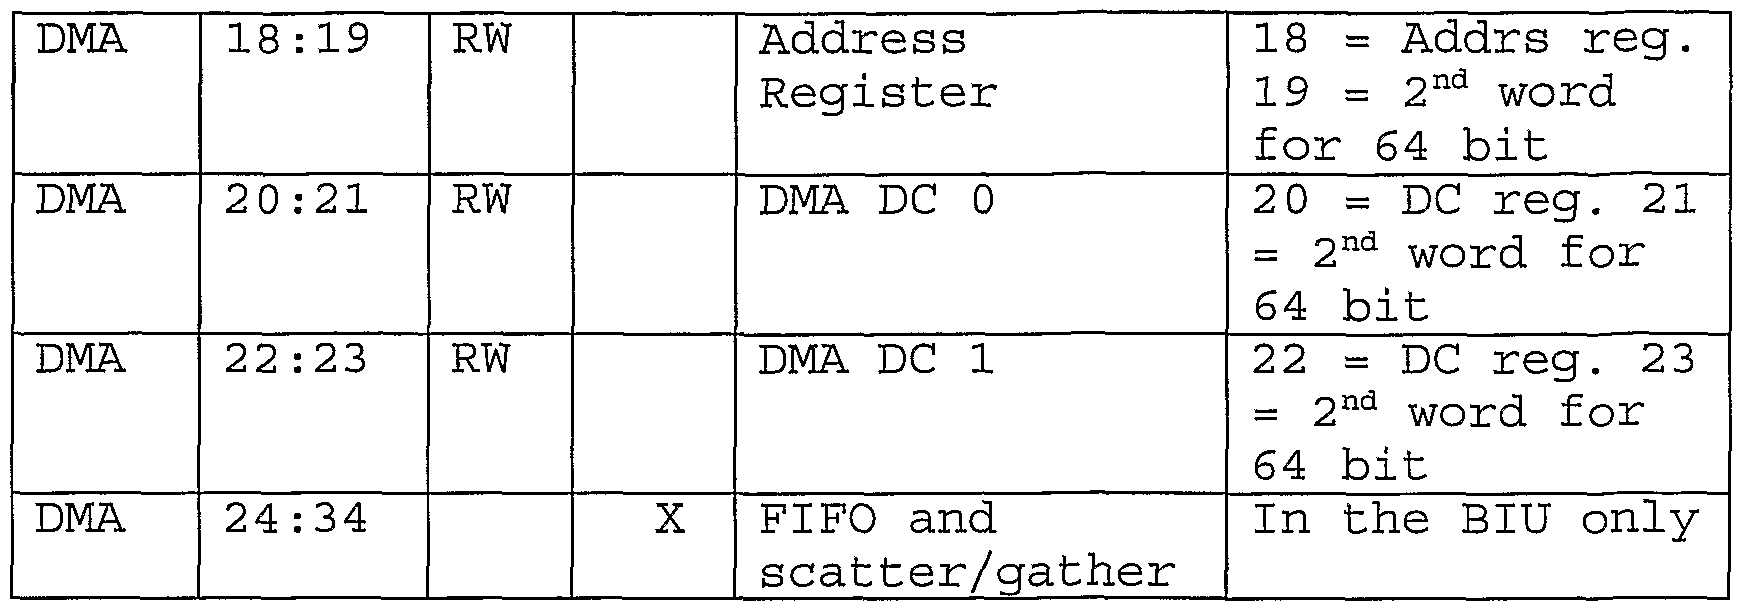 WO2005013084A2 - Method and system for performing operations on data